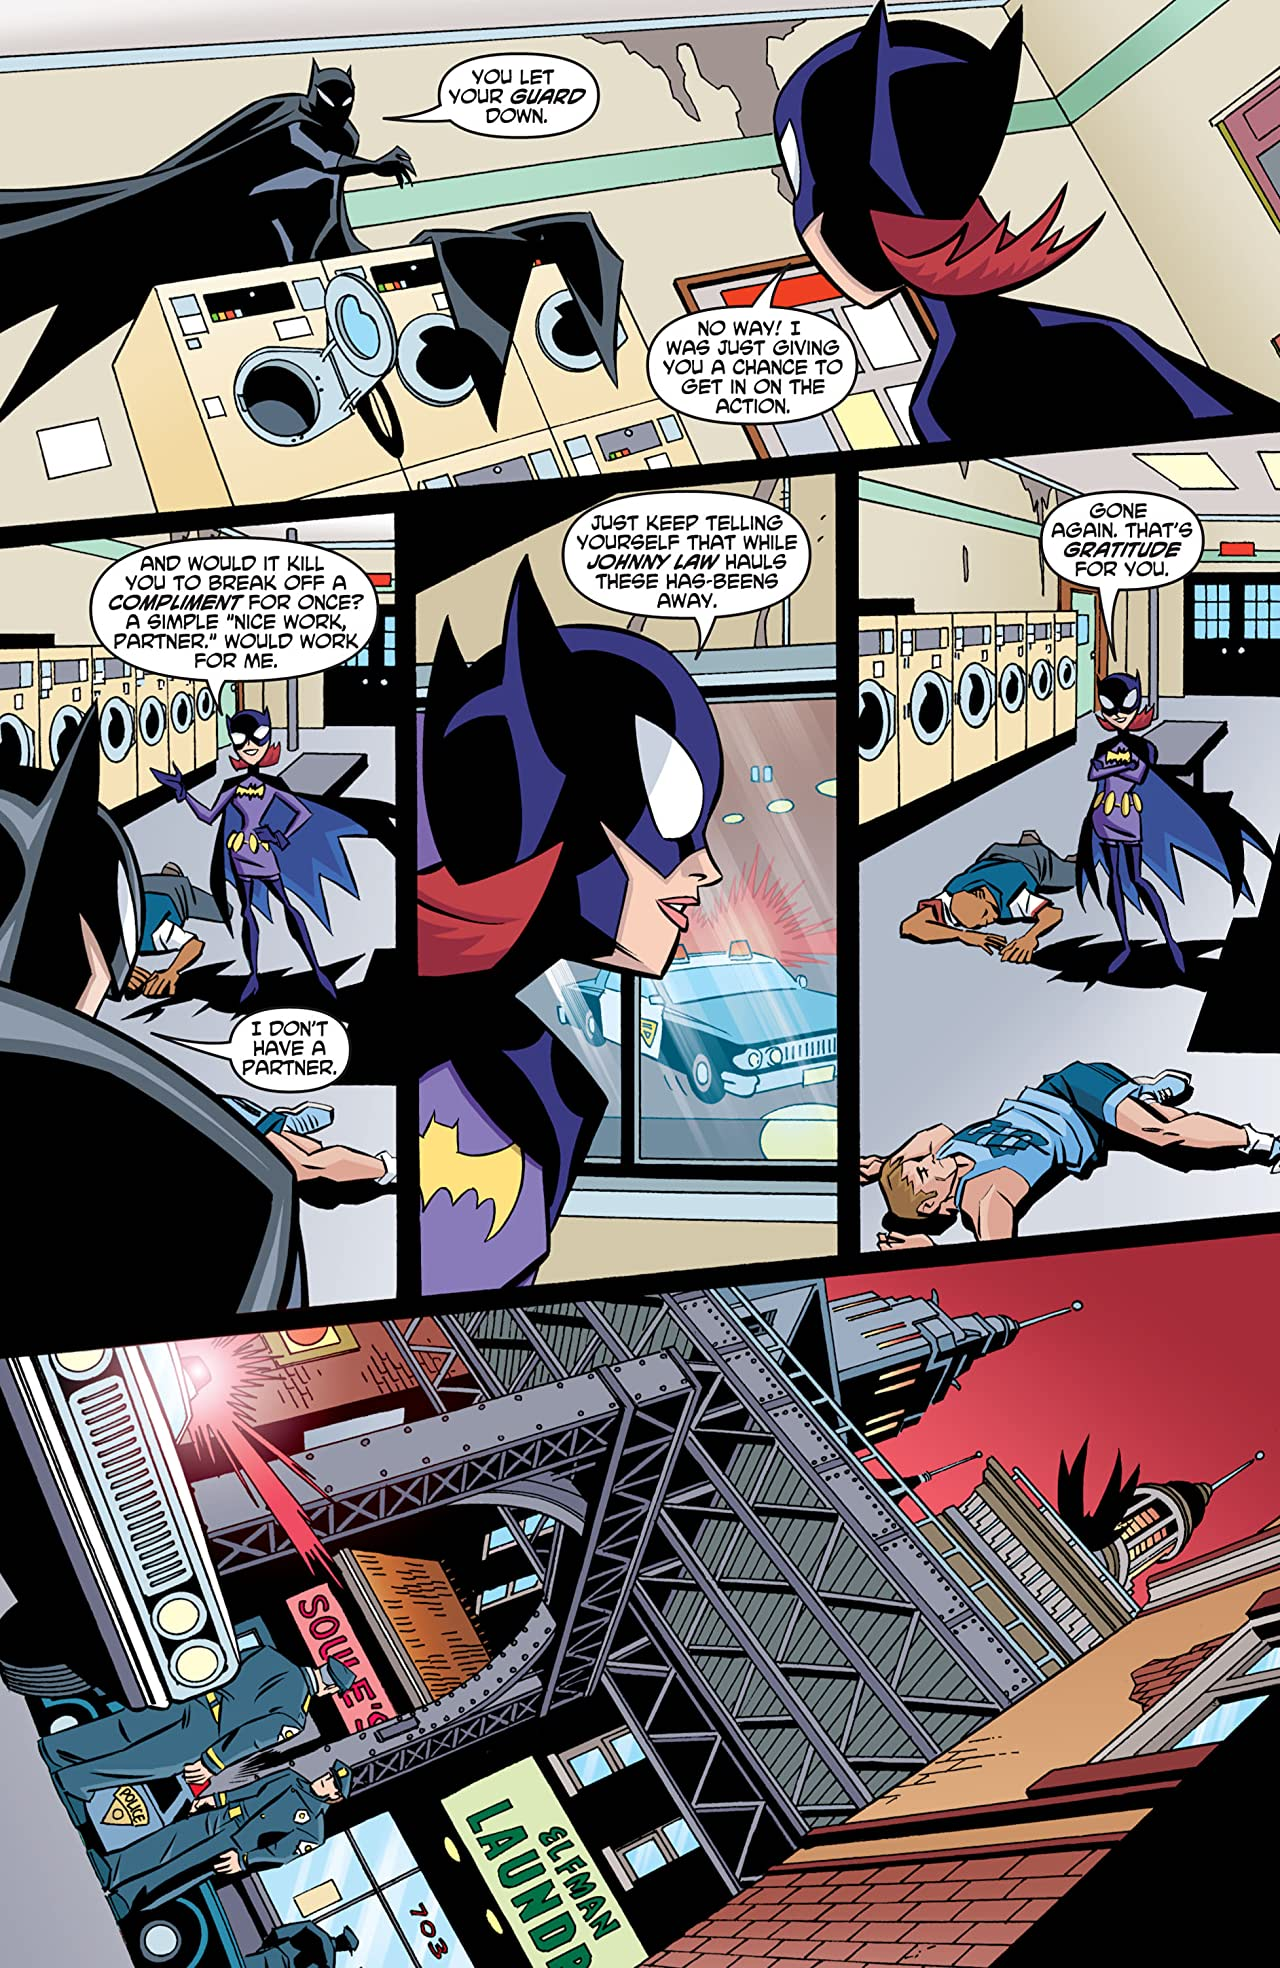 The Batman Strikes! #18